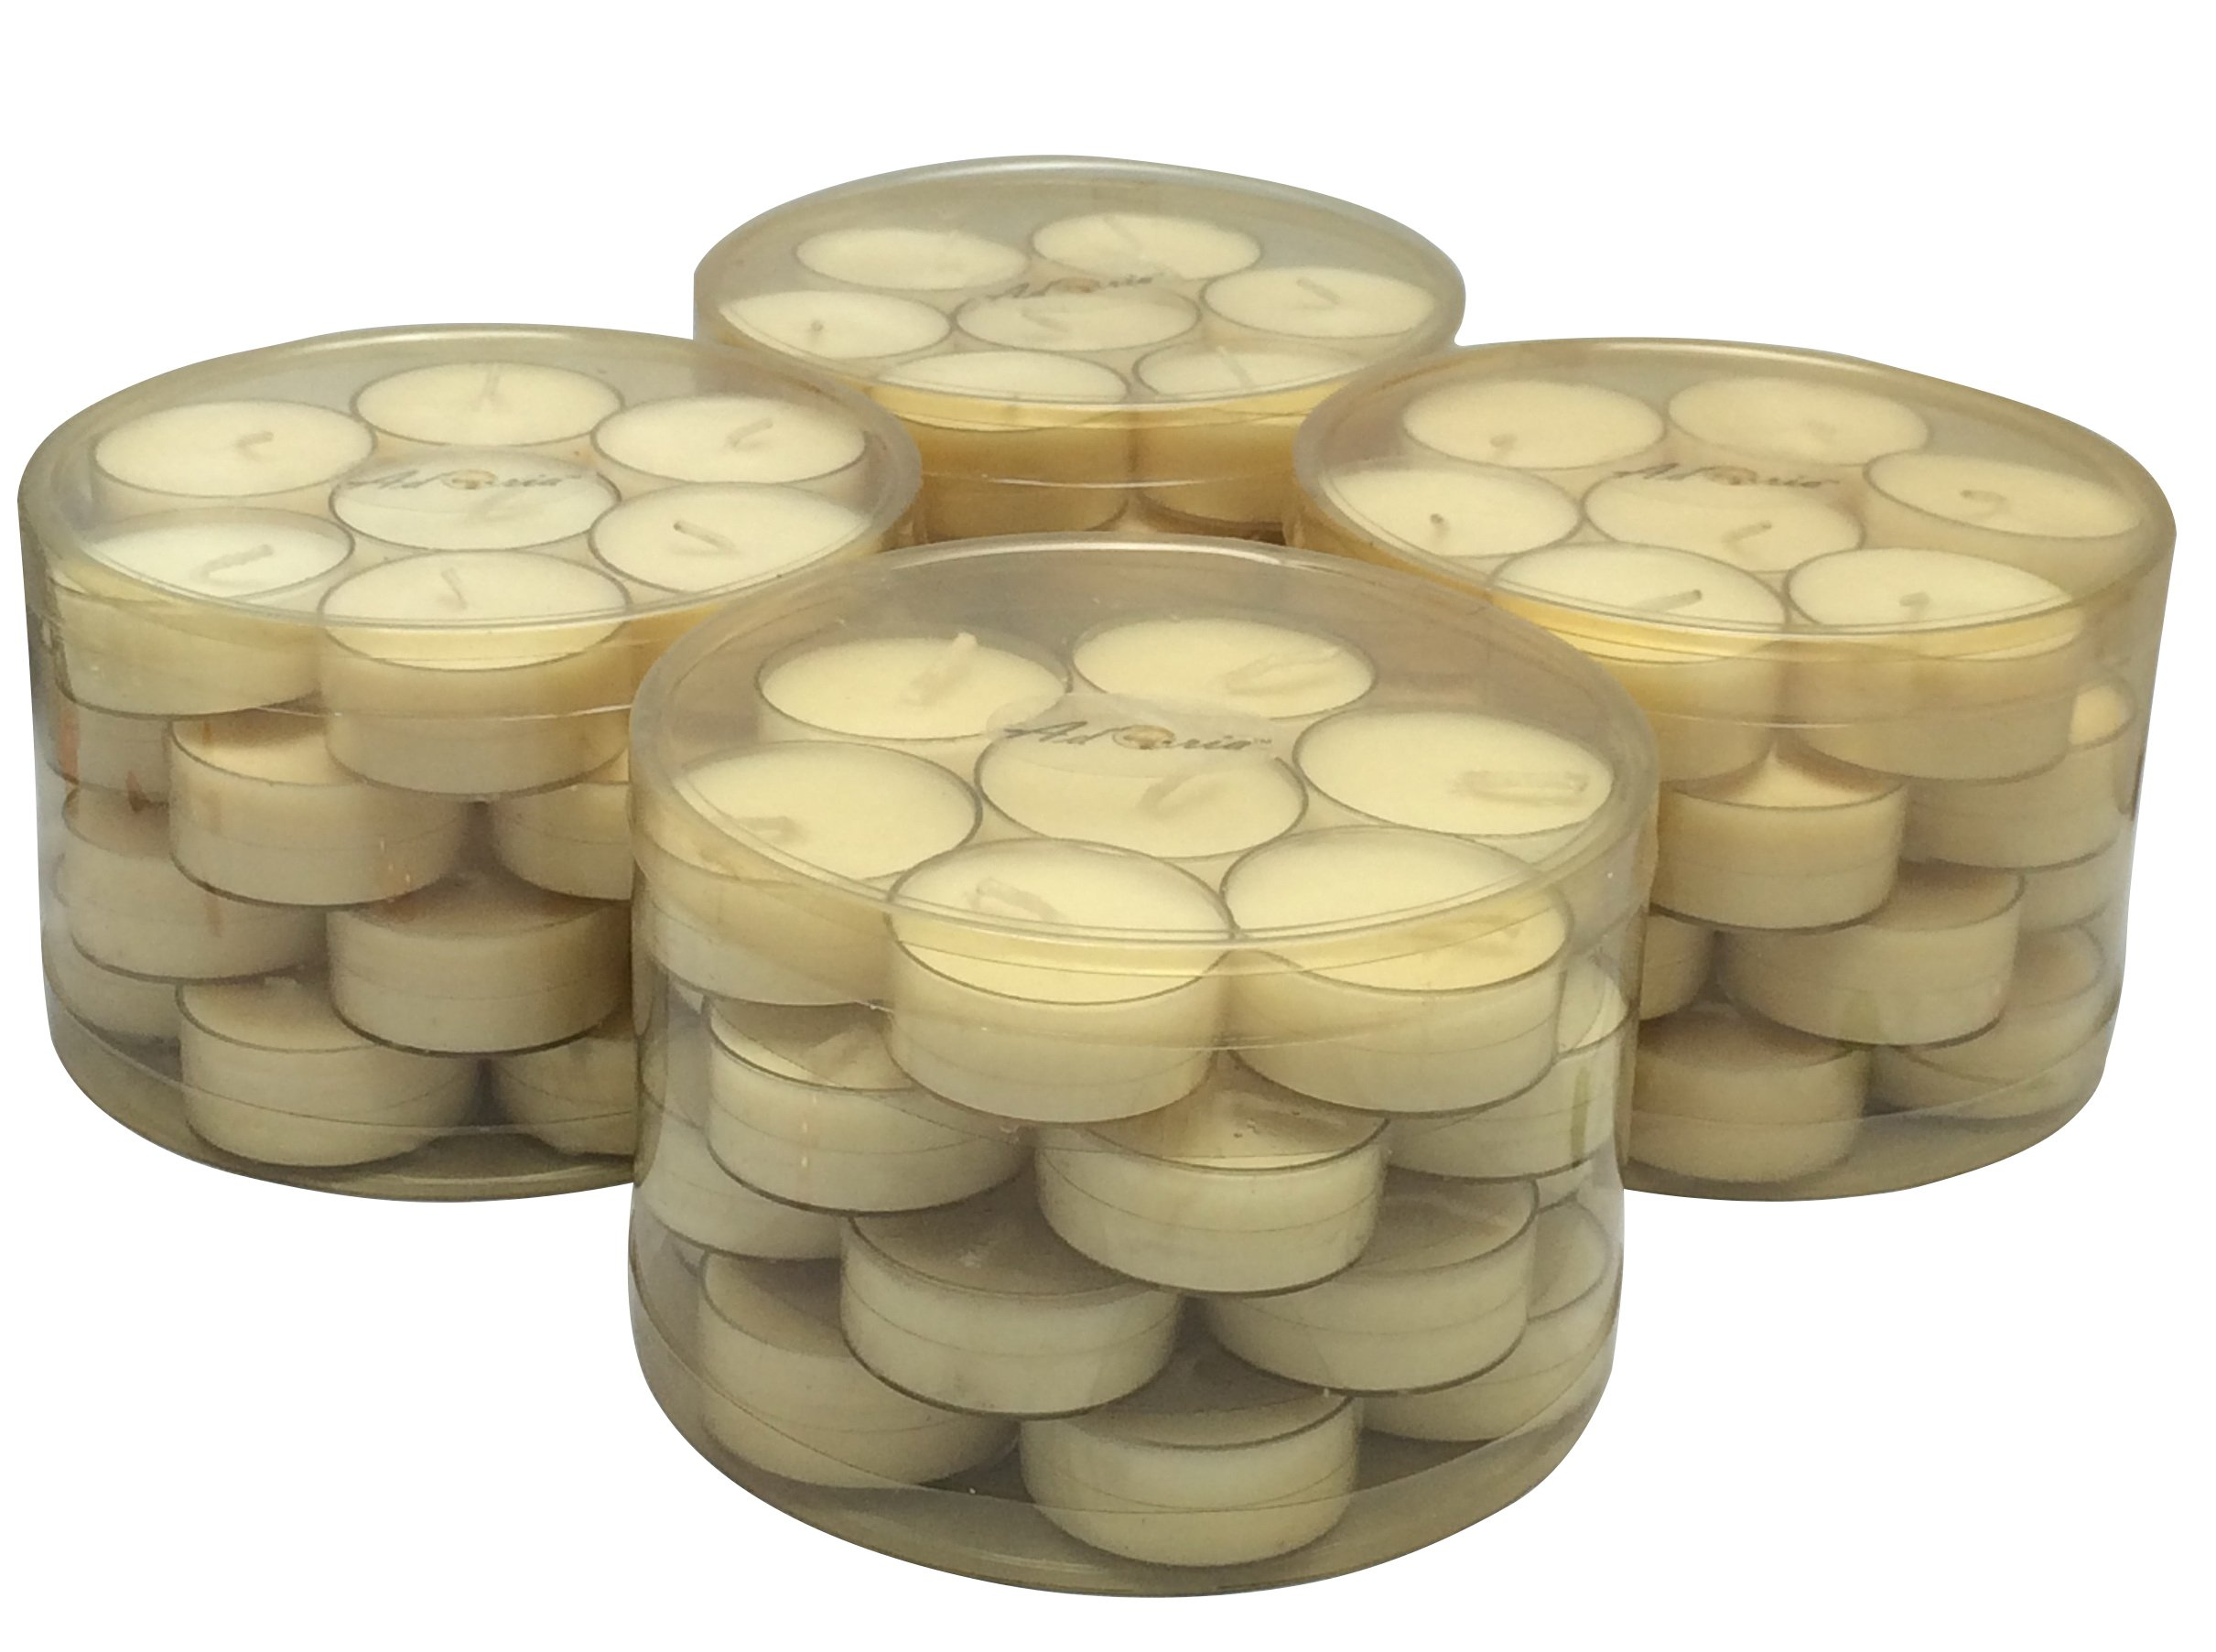 Adoria Tea Light Candles Gift Set - 100% Natural Soy Wax Candle Unscent in Clear Cup 112 Packs Bulk for Home Decor,Outdoor,Wedding,Parties and Gift-Over 4 Burning Hours